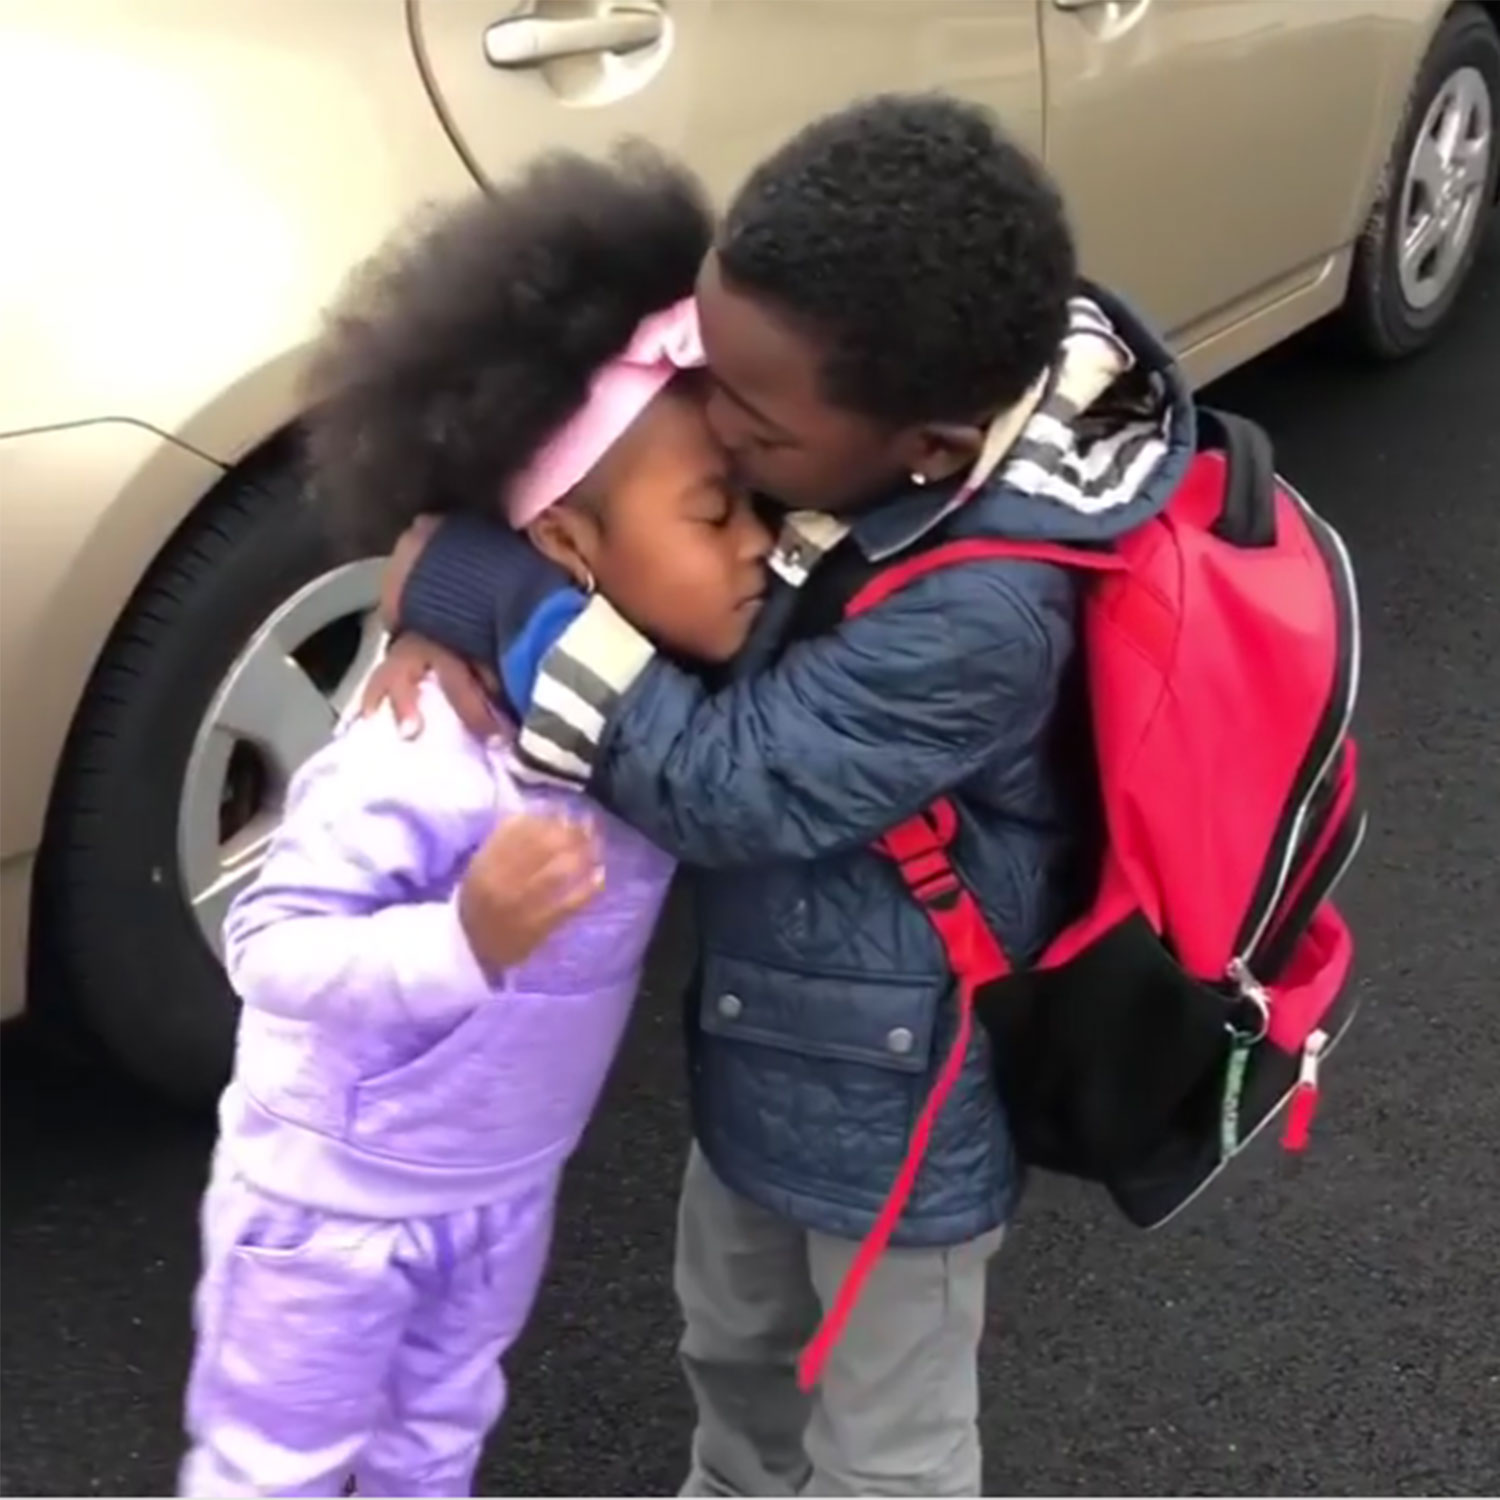 Brother and Sister's Sweet Reunion After a Long Day of Kindergarten Will Make Your Week